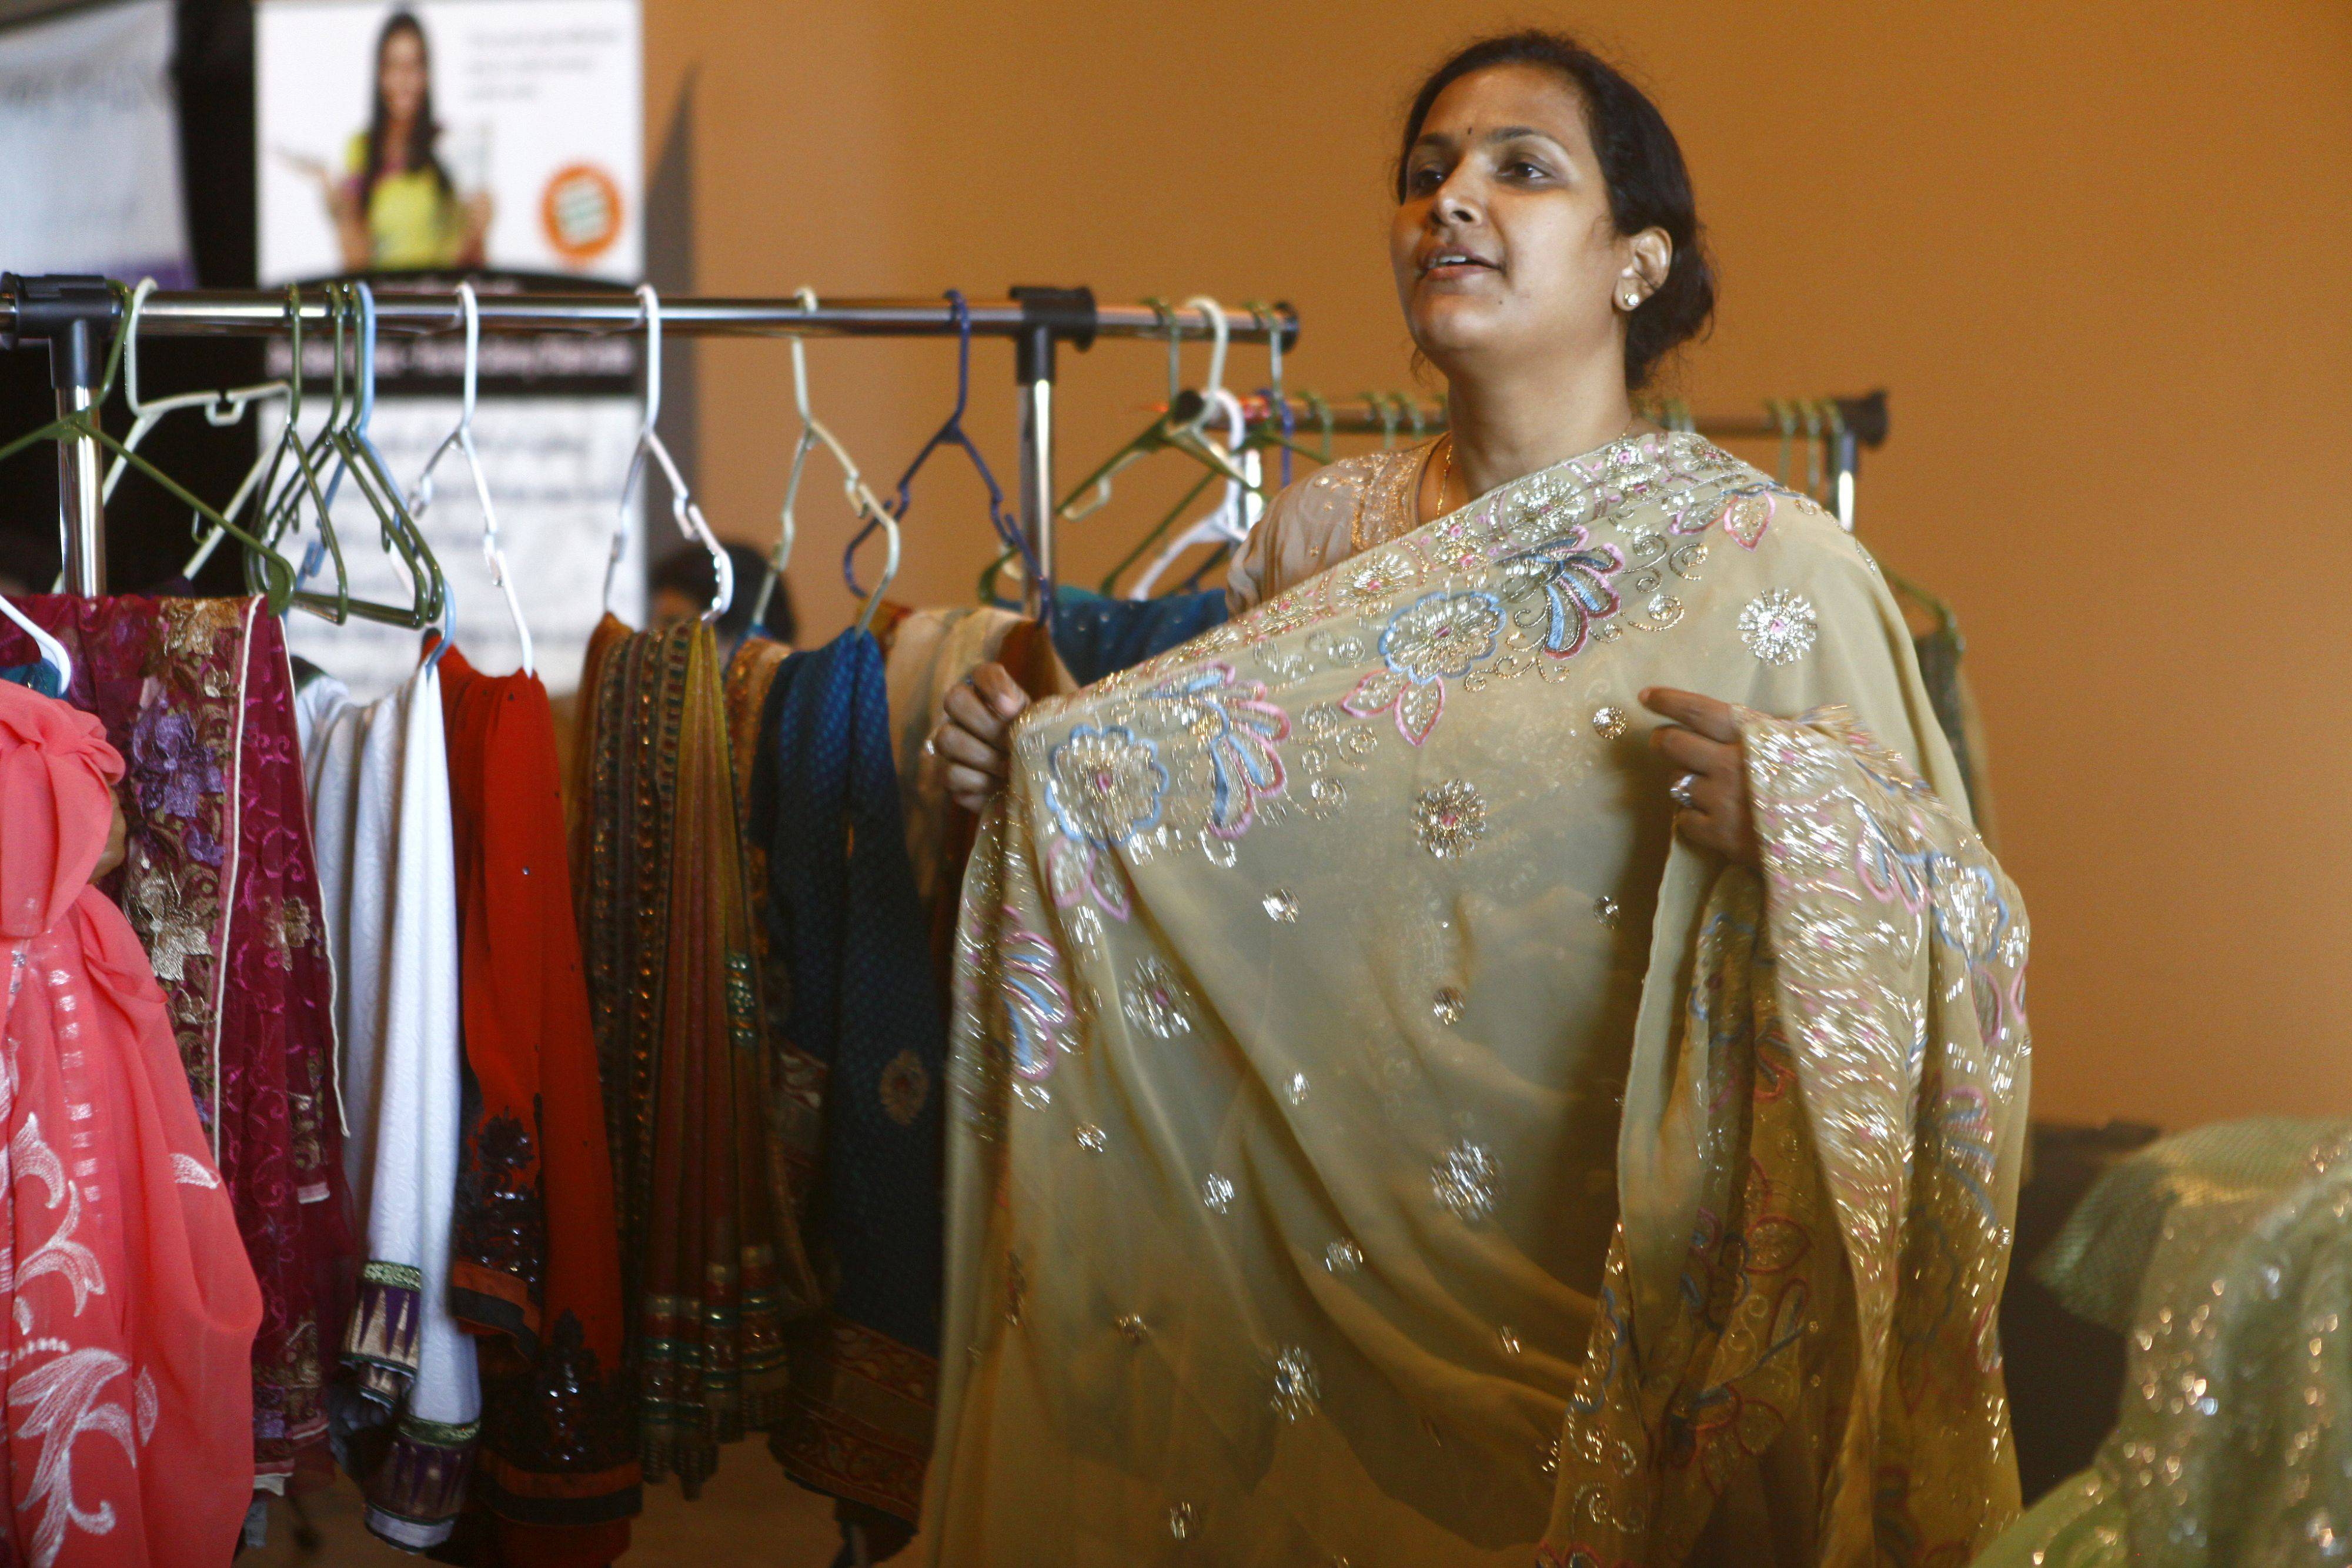 Reddy Anu, from Delhi, India, shows customers one of her handmade saris at the Vibrant India Festival held at the Sears Center Sunday afternoon. The fest featured music, food, clothing and jewelry vendors.